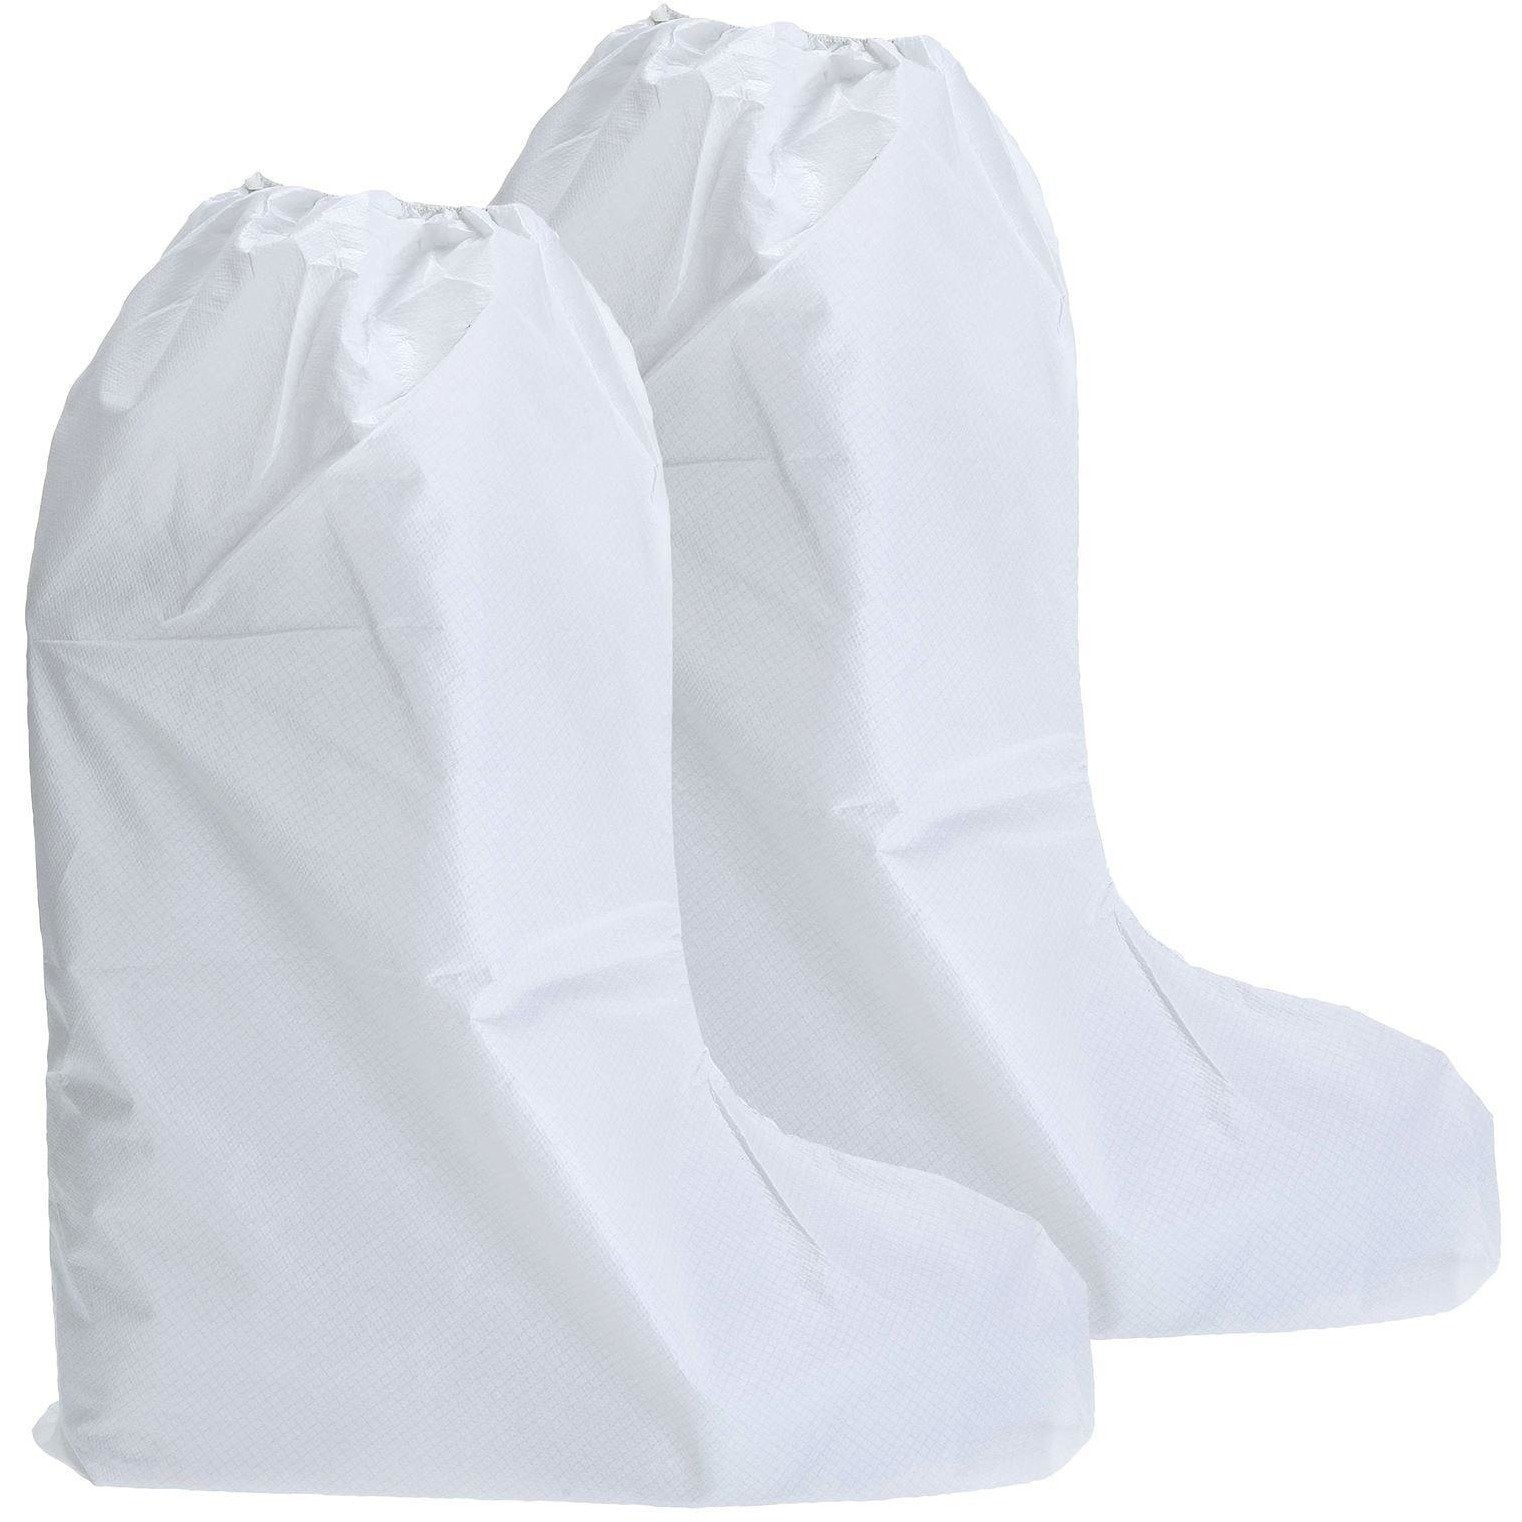 Portwest BizTex Microporous Boot Cover Type 6PB (Pack of 200) ST45 - reid outdoors